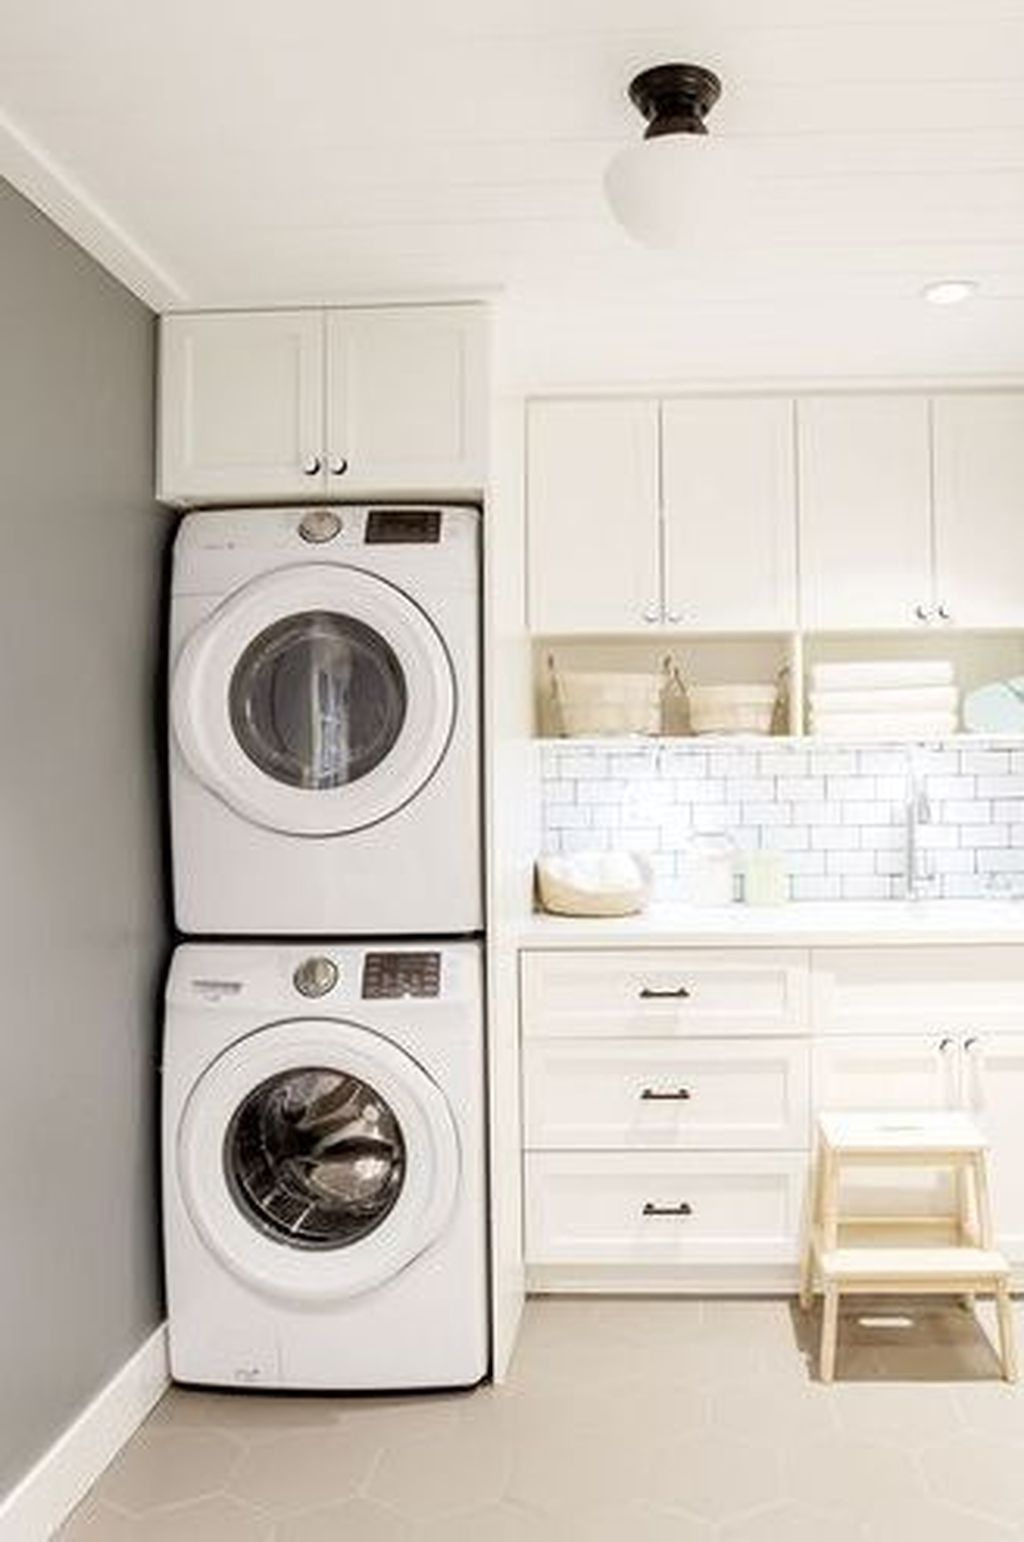 38 Wonderful Bright Laundry Room Designs Ideas That You Need To Try